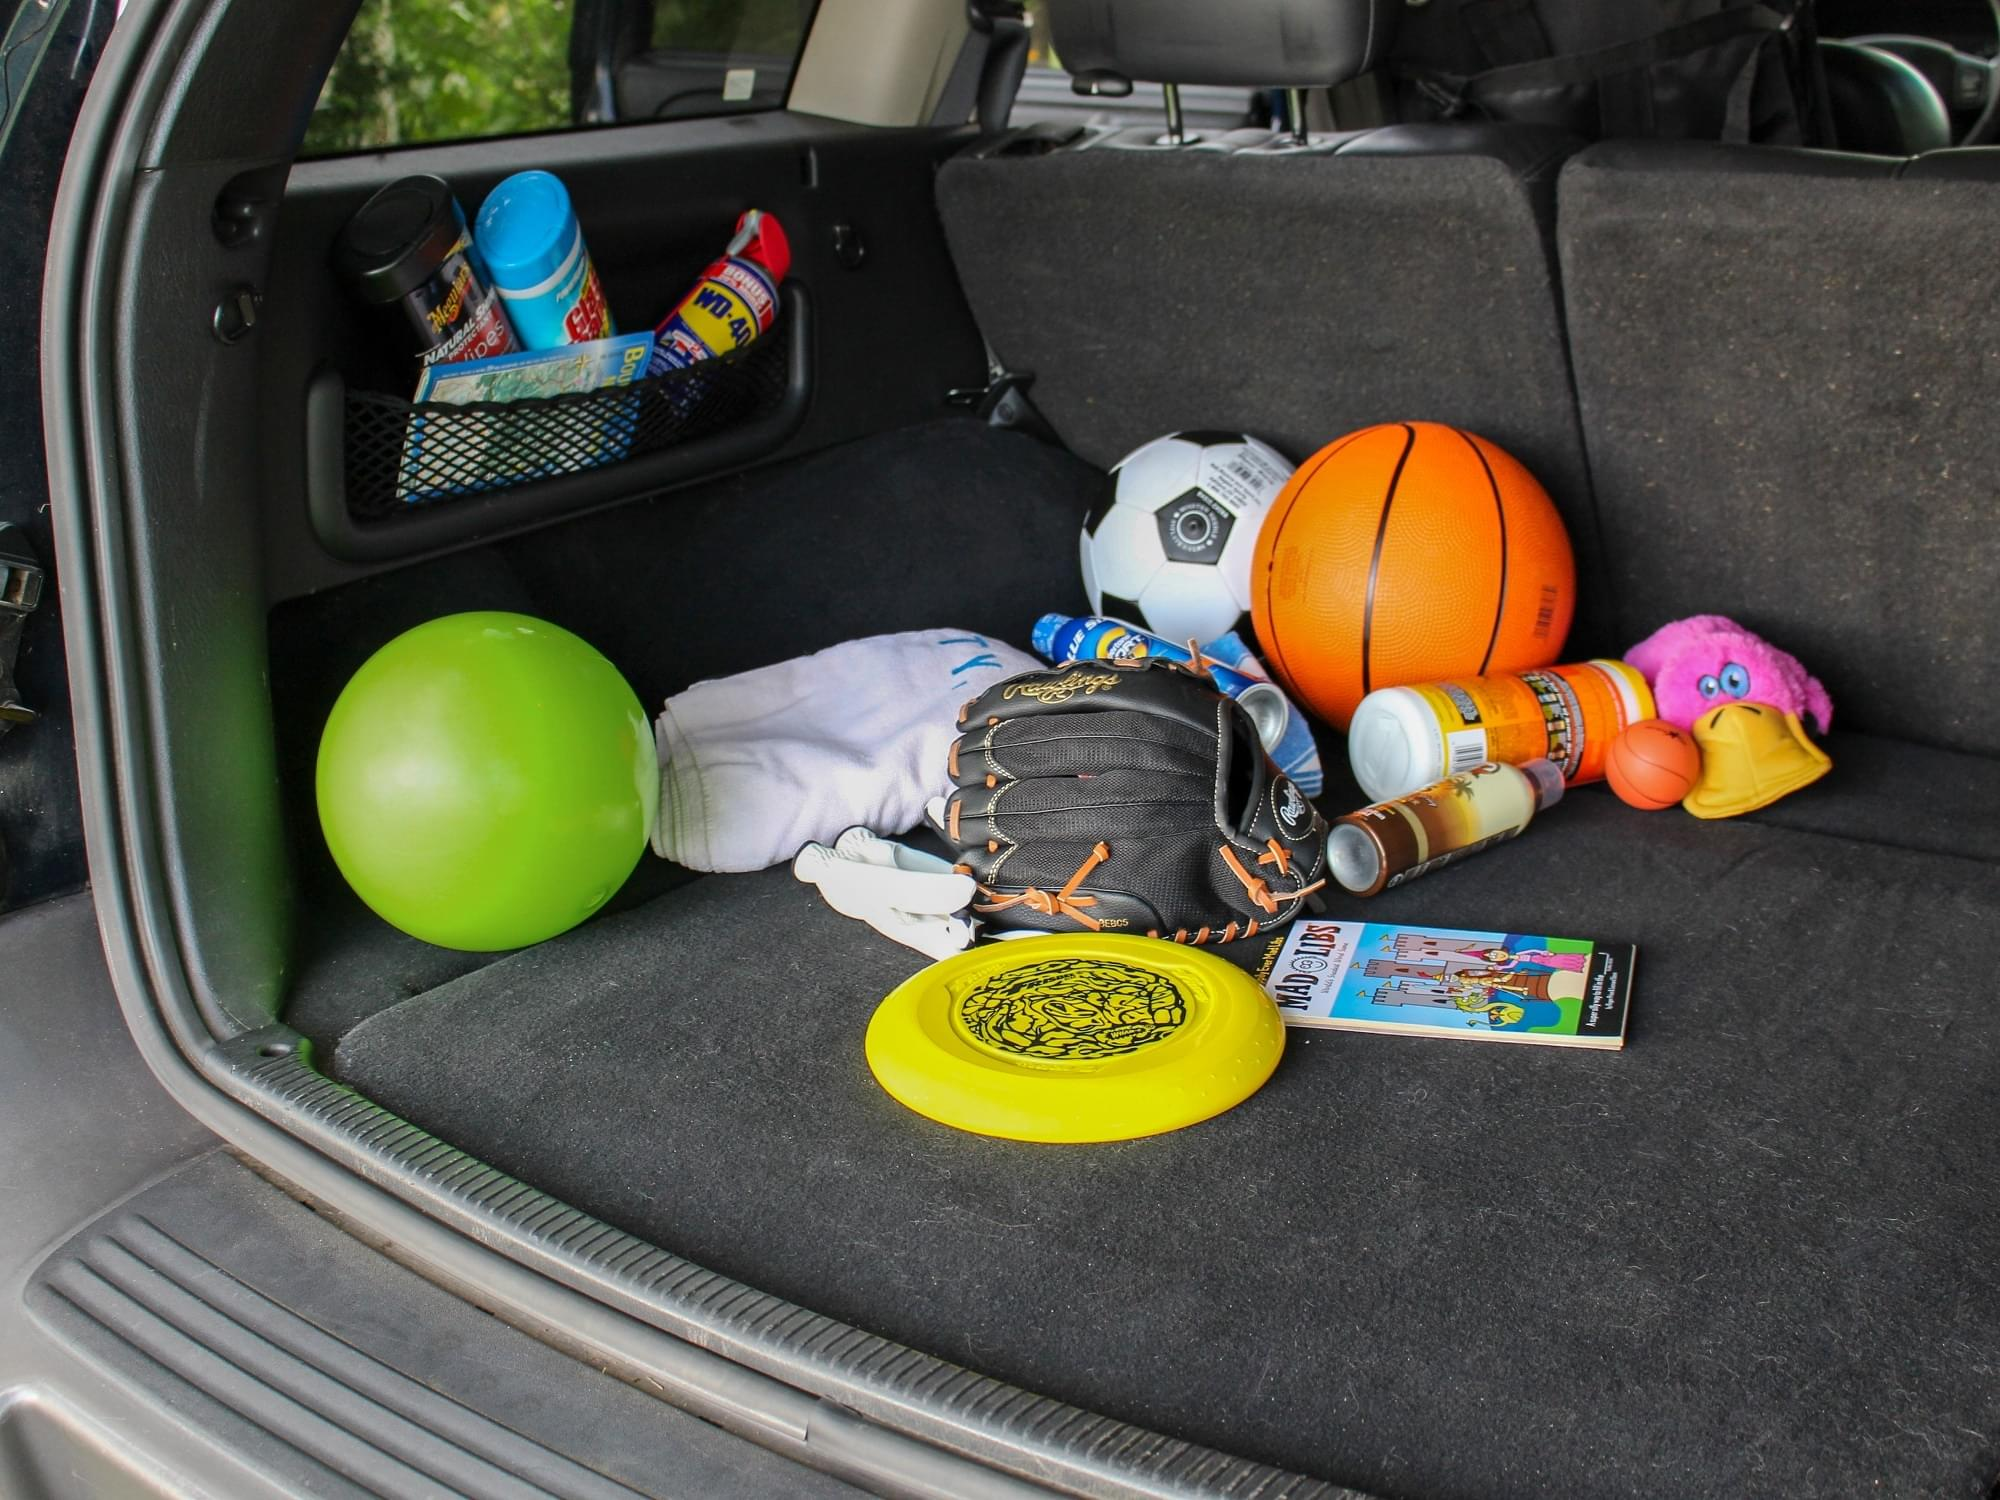 messy SUV with toys in the back cargo area